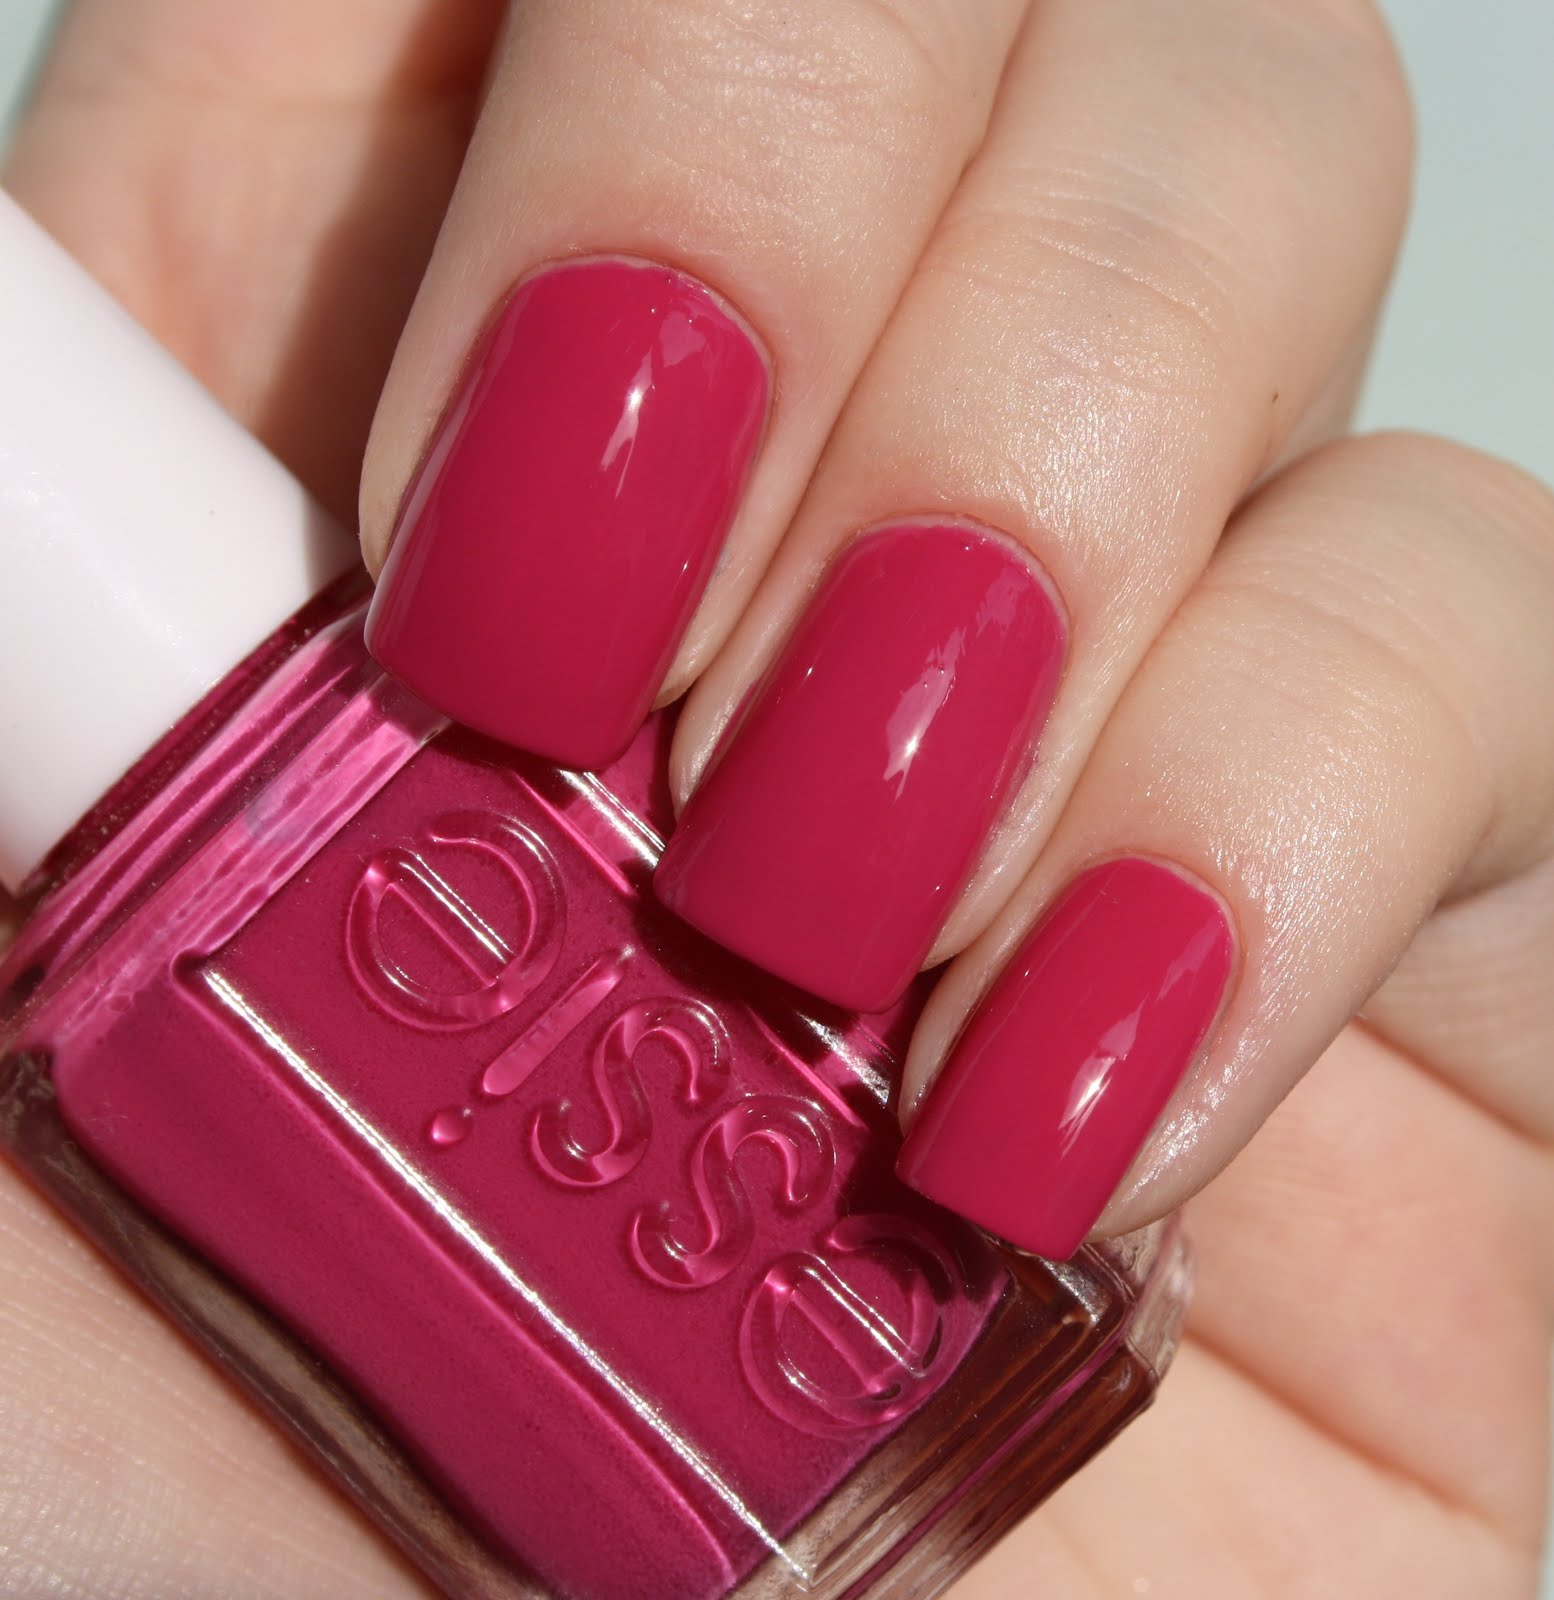 Red Nail Polish On Thumb: Vique's Varnish: Essie No Boundaries